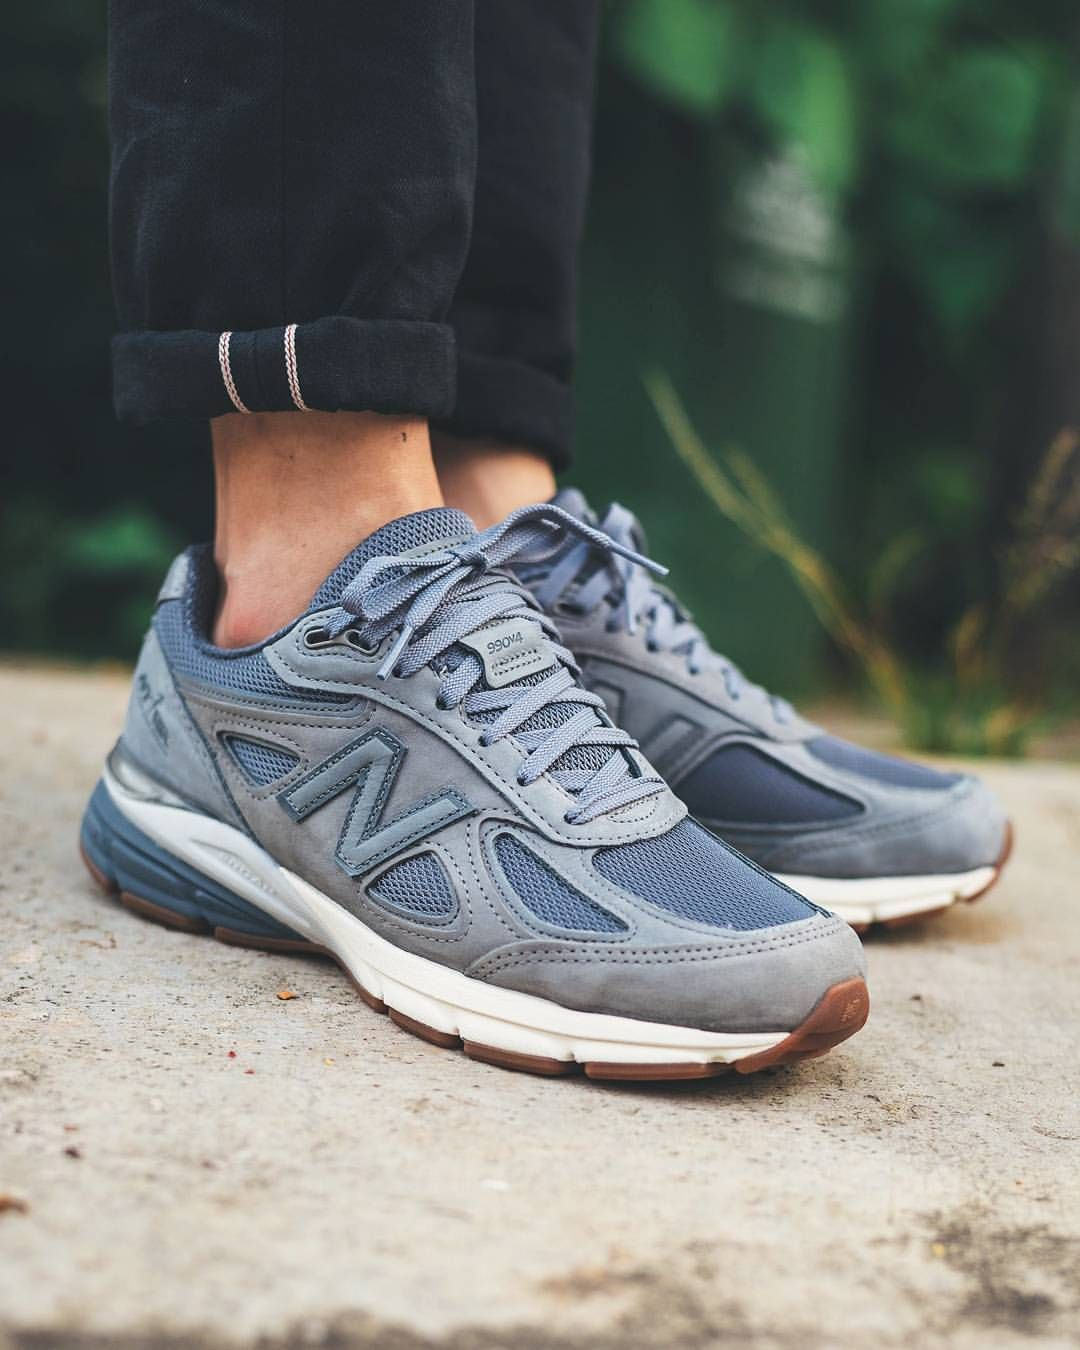 uk availability a3b9f de6c0 New Balance M990v4